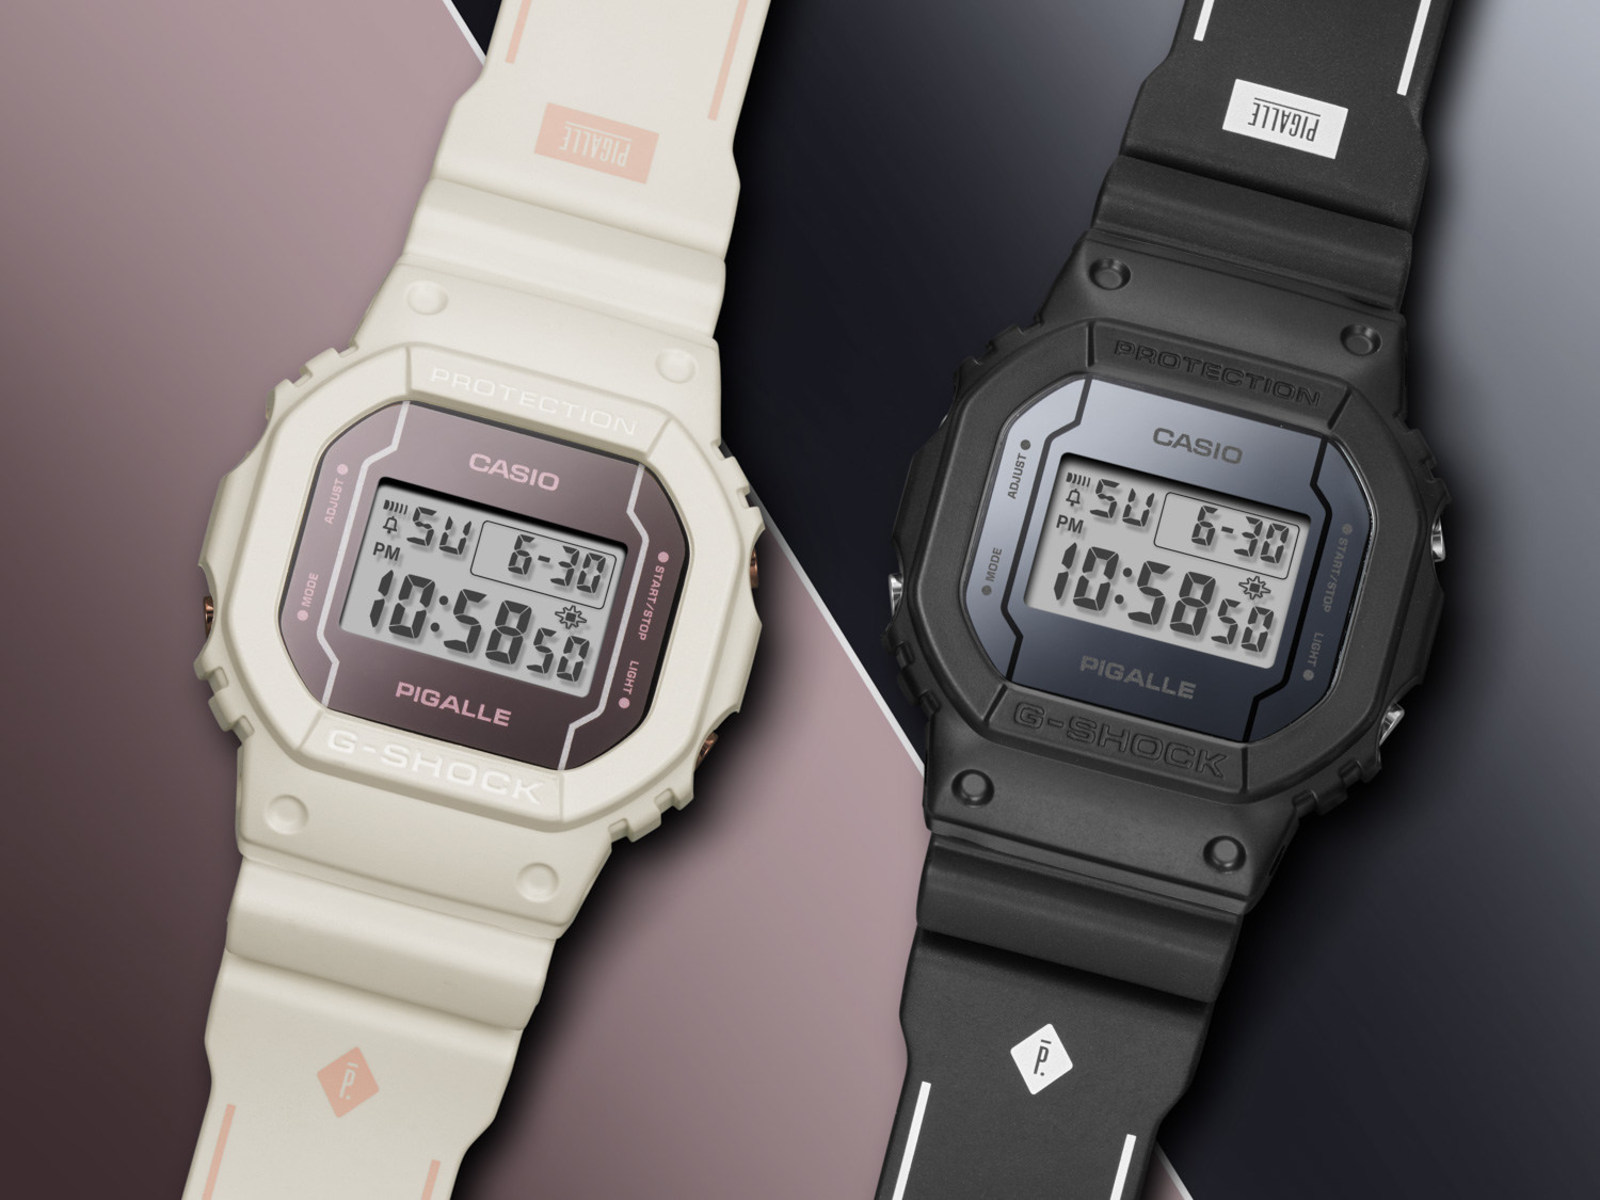 Limited Edition G-SHOCK Collaboration With French Streetwear Brand Pigalle (PRNewsfoto/Casio America, Inc.)